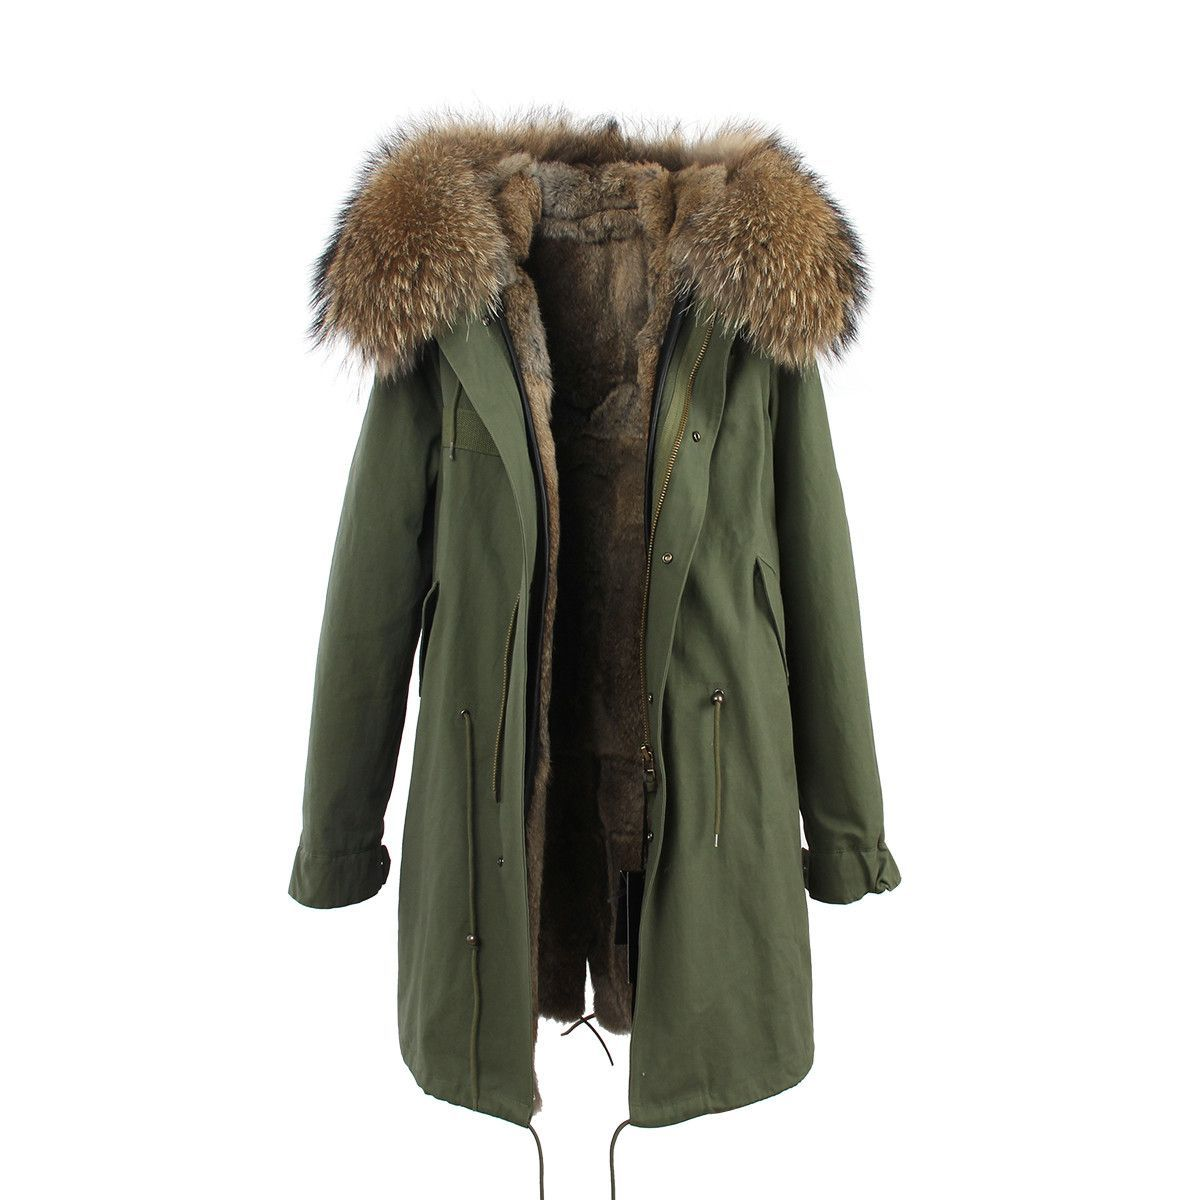 8a4e81123db7f New Fashion women s army green Large raccoon fur collar hooded long coat  parkas outwear rabbit fur lining winter jacket